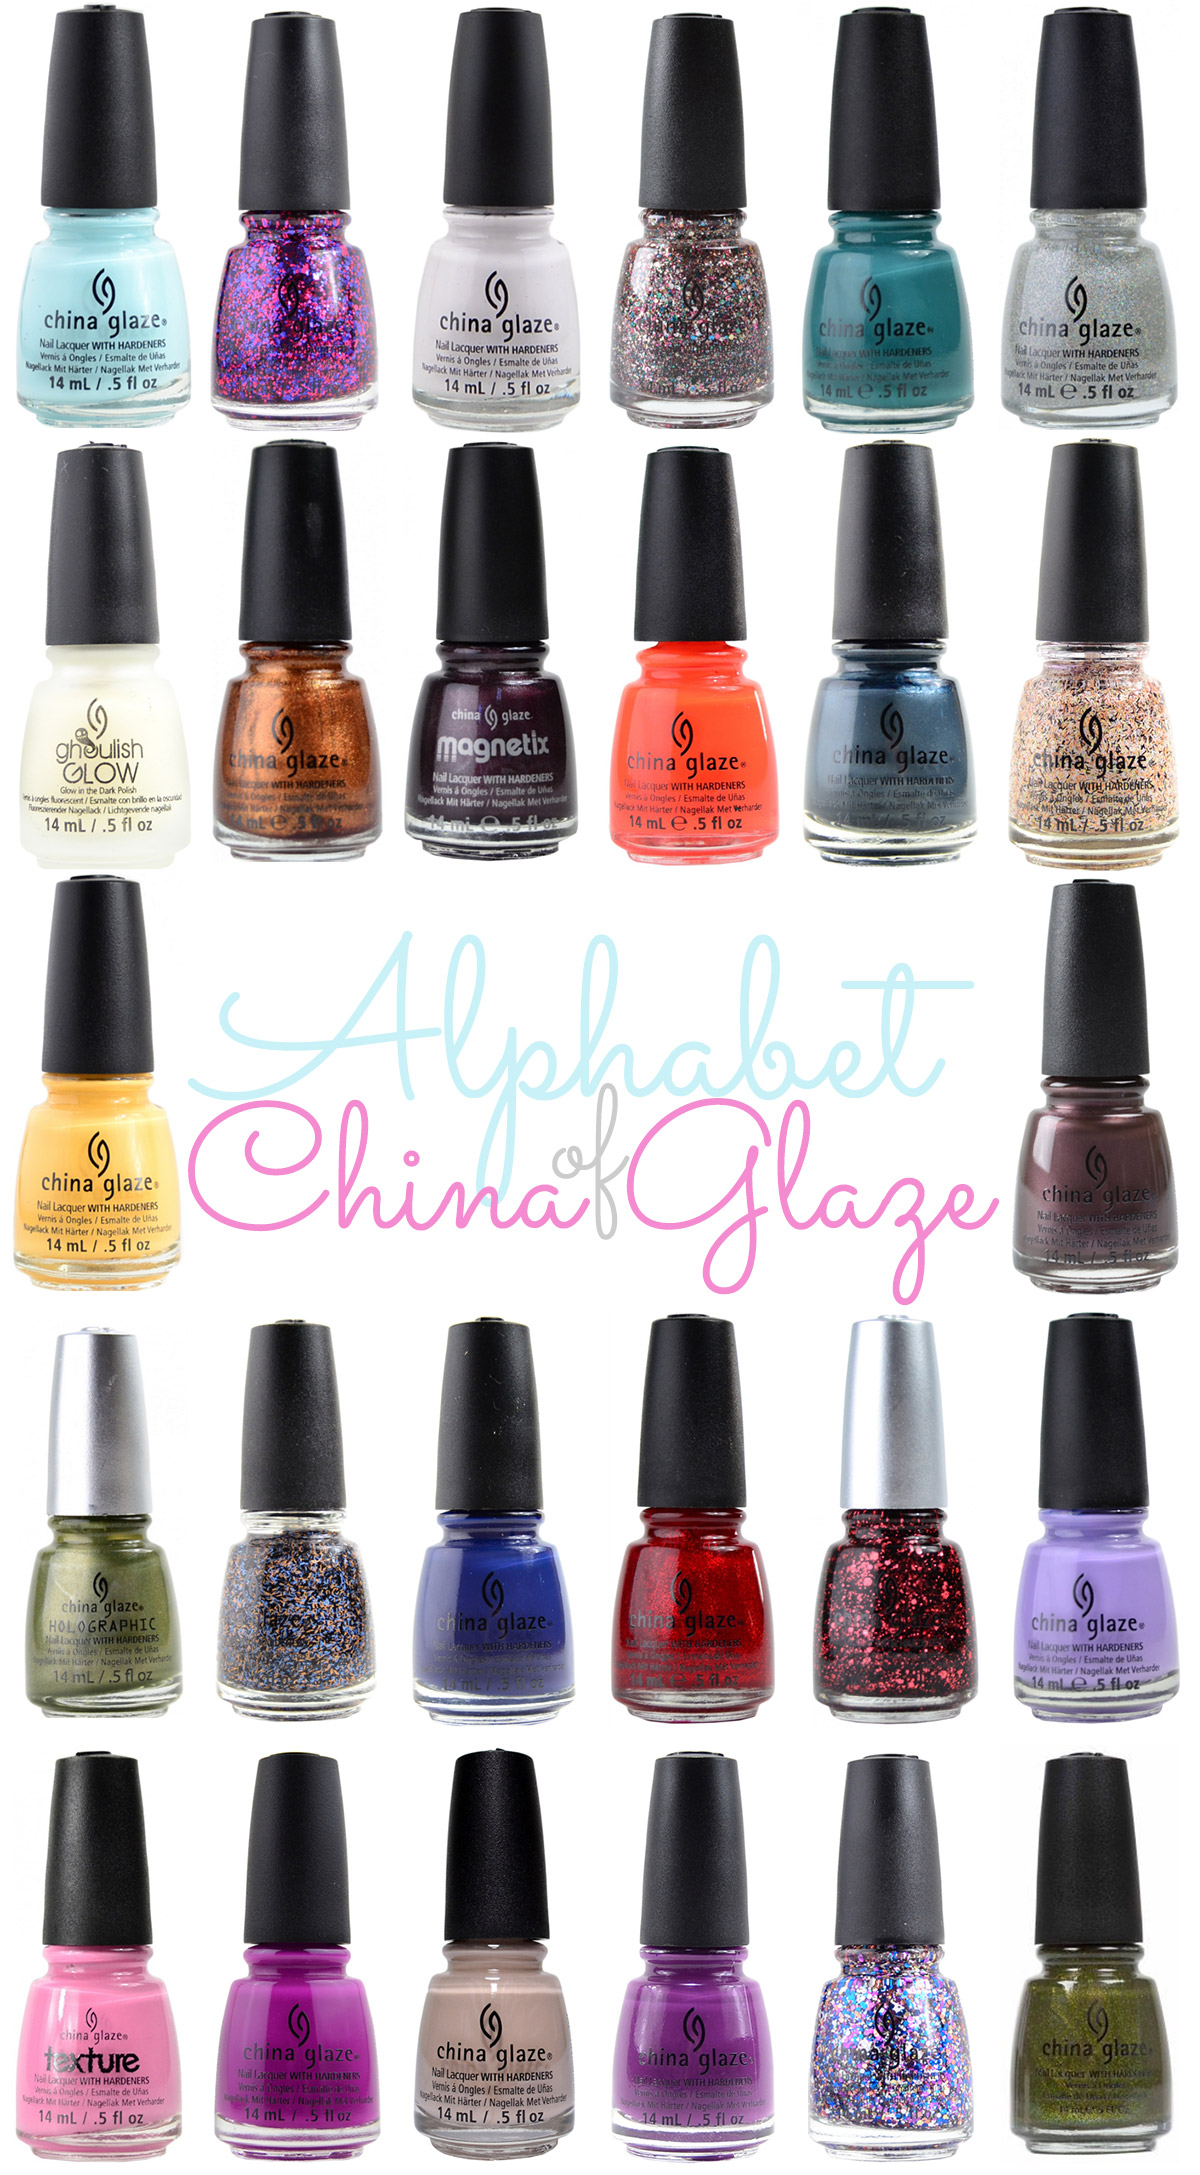 The ABCs of China Glaze Nail Polish - Tea & Nail Polish